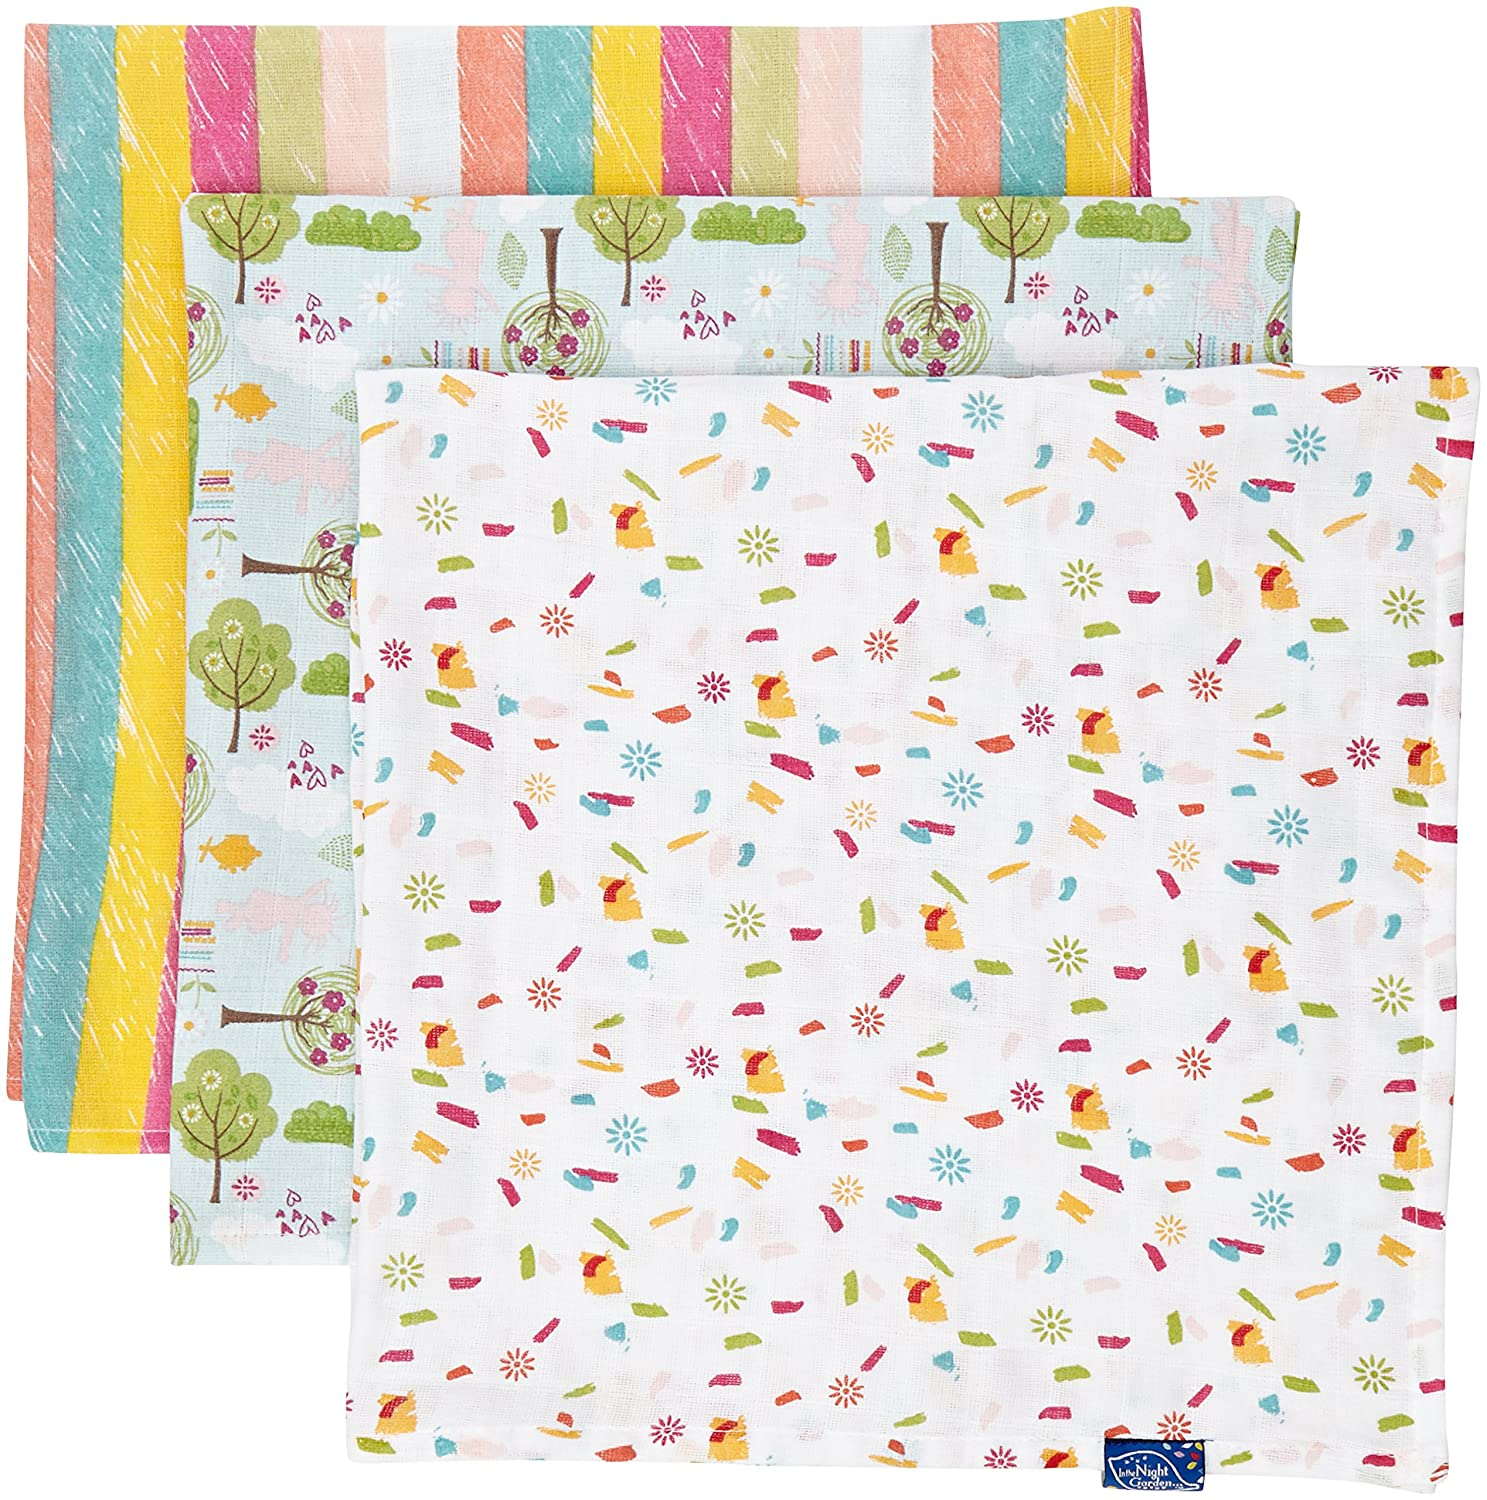 In the Night Garden Baby-Boys Itng Muslin Set of 3 Scarf Pink (Pink/Yellow) One Size 06181